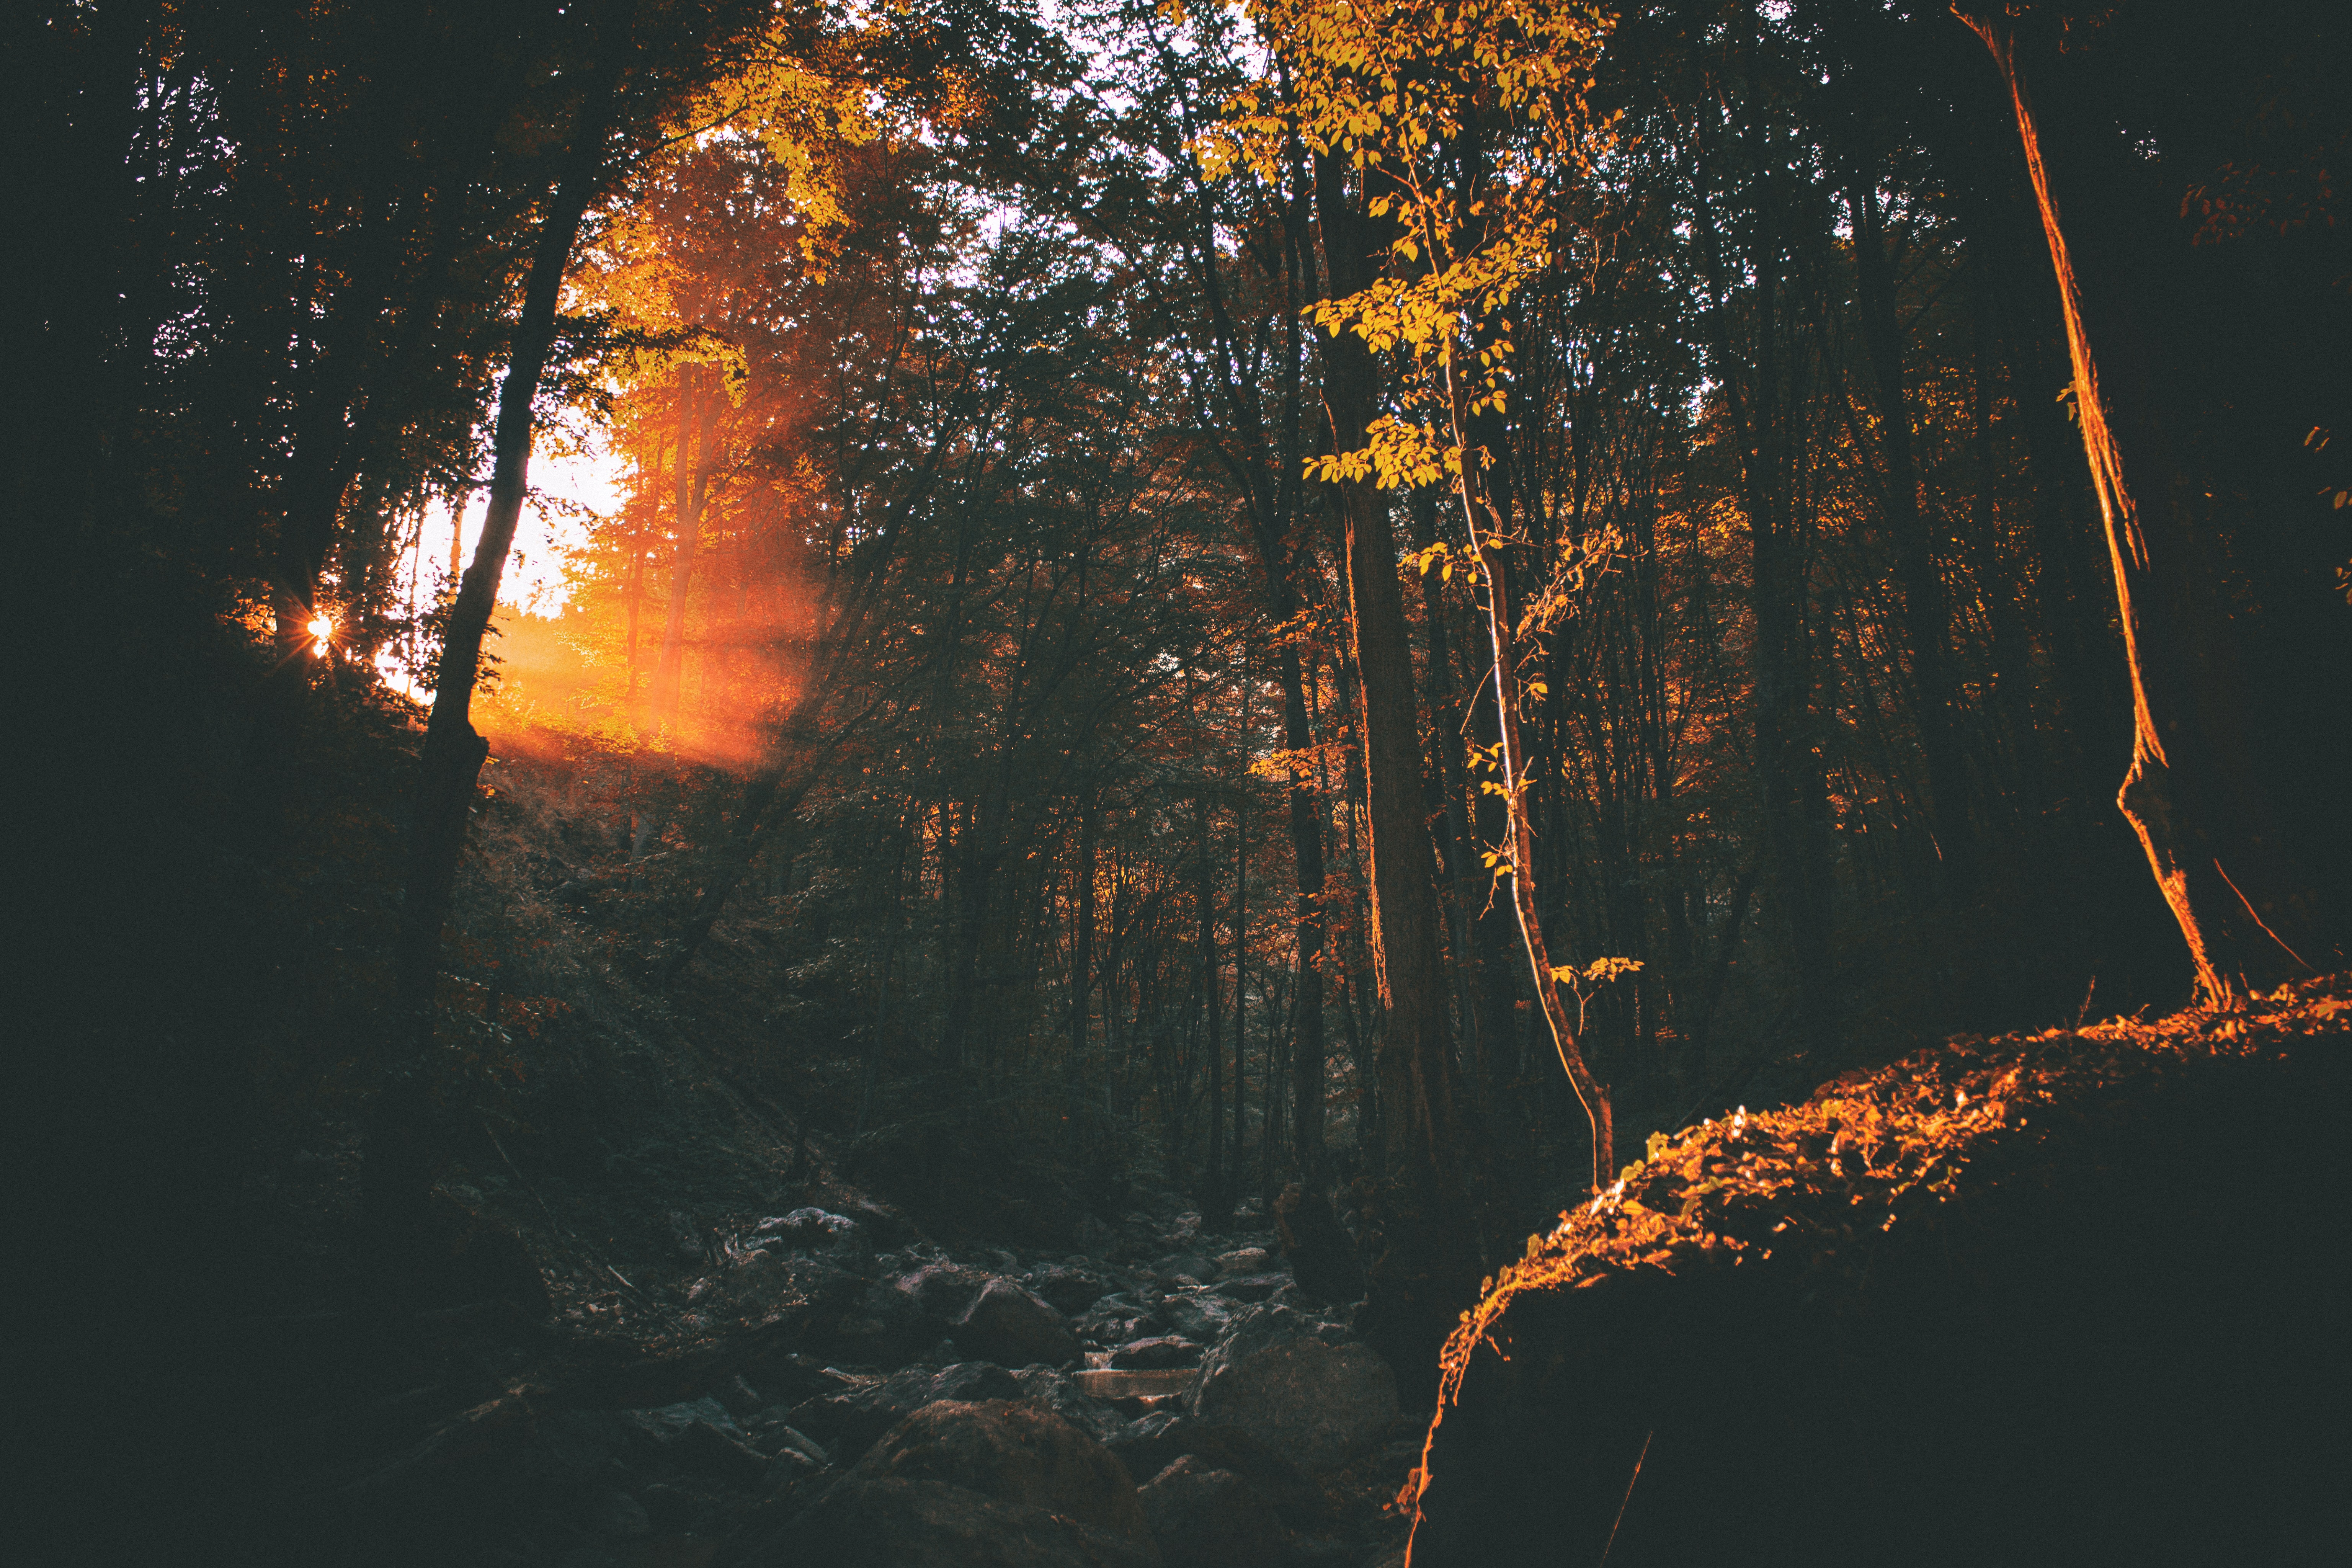 Warm sunlight breaks into the autumn forest through an opening in the canopy